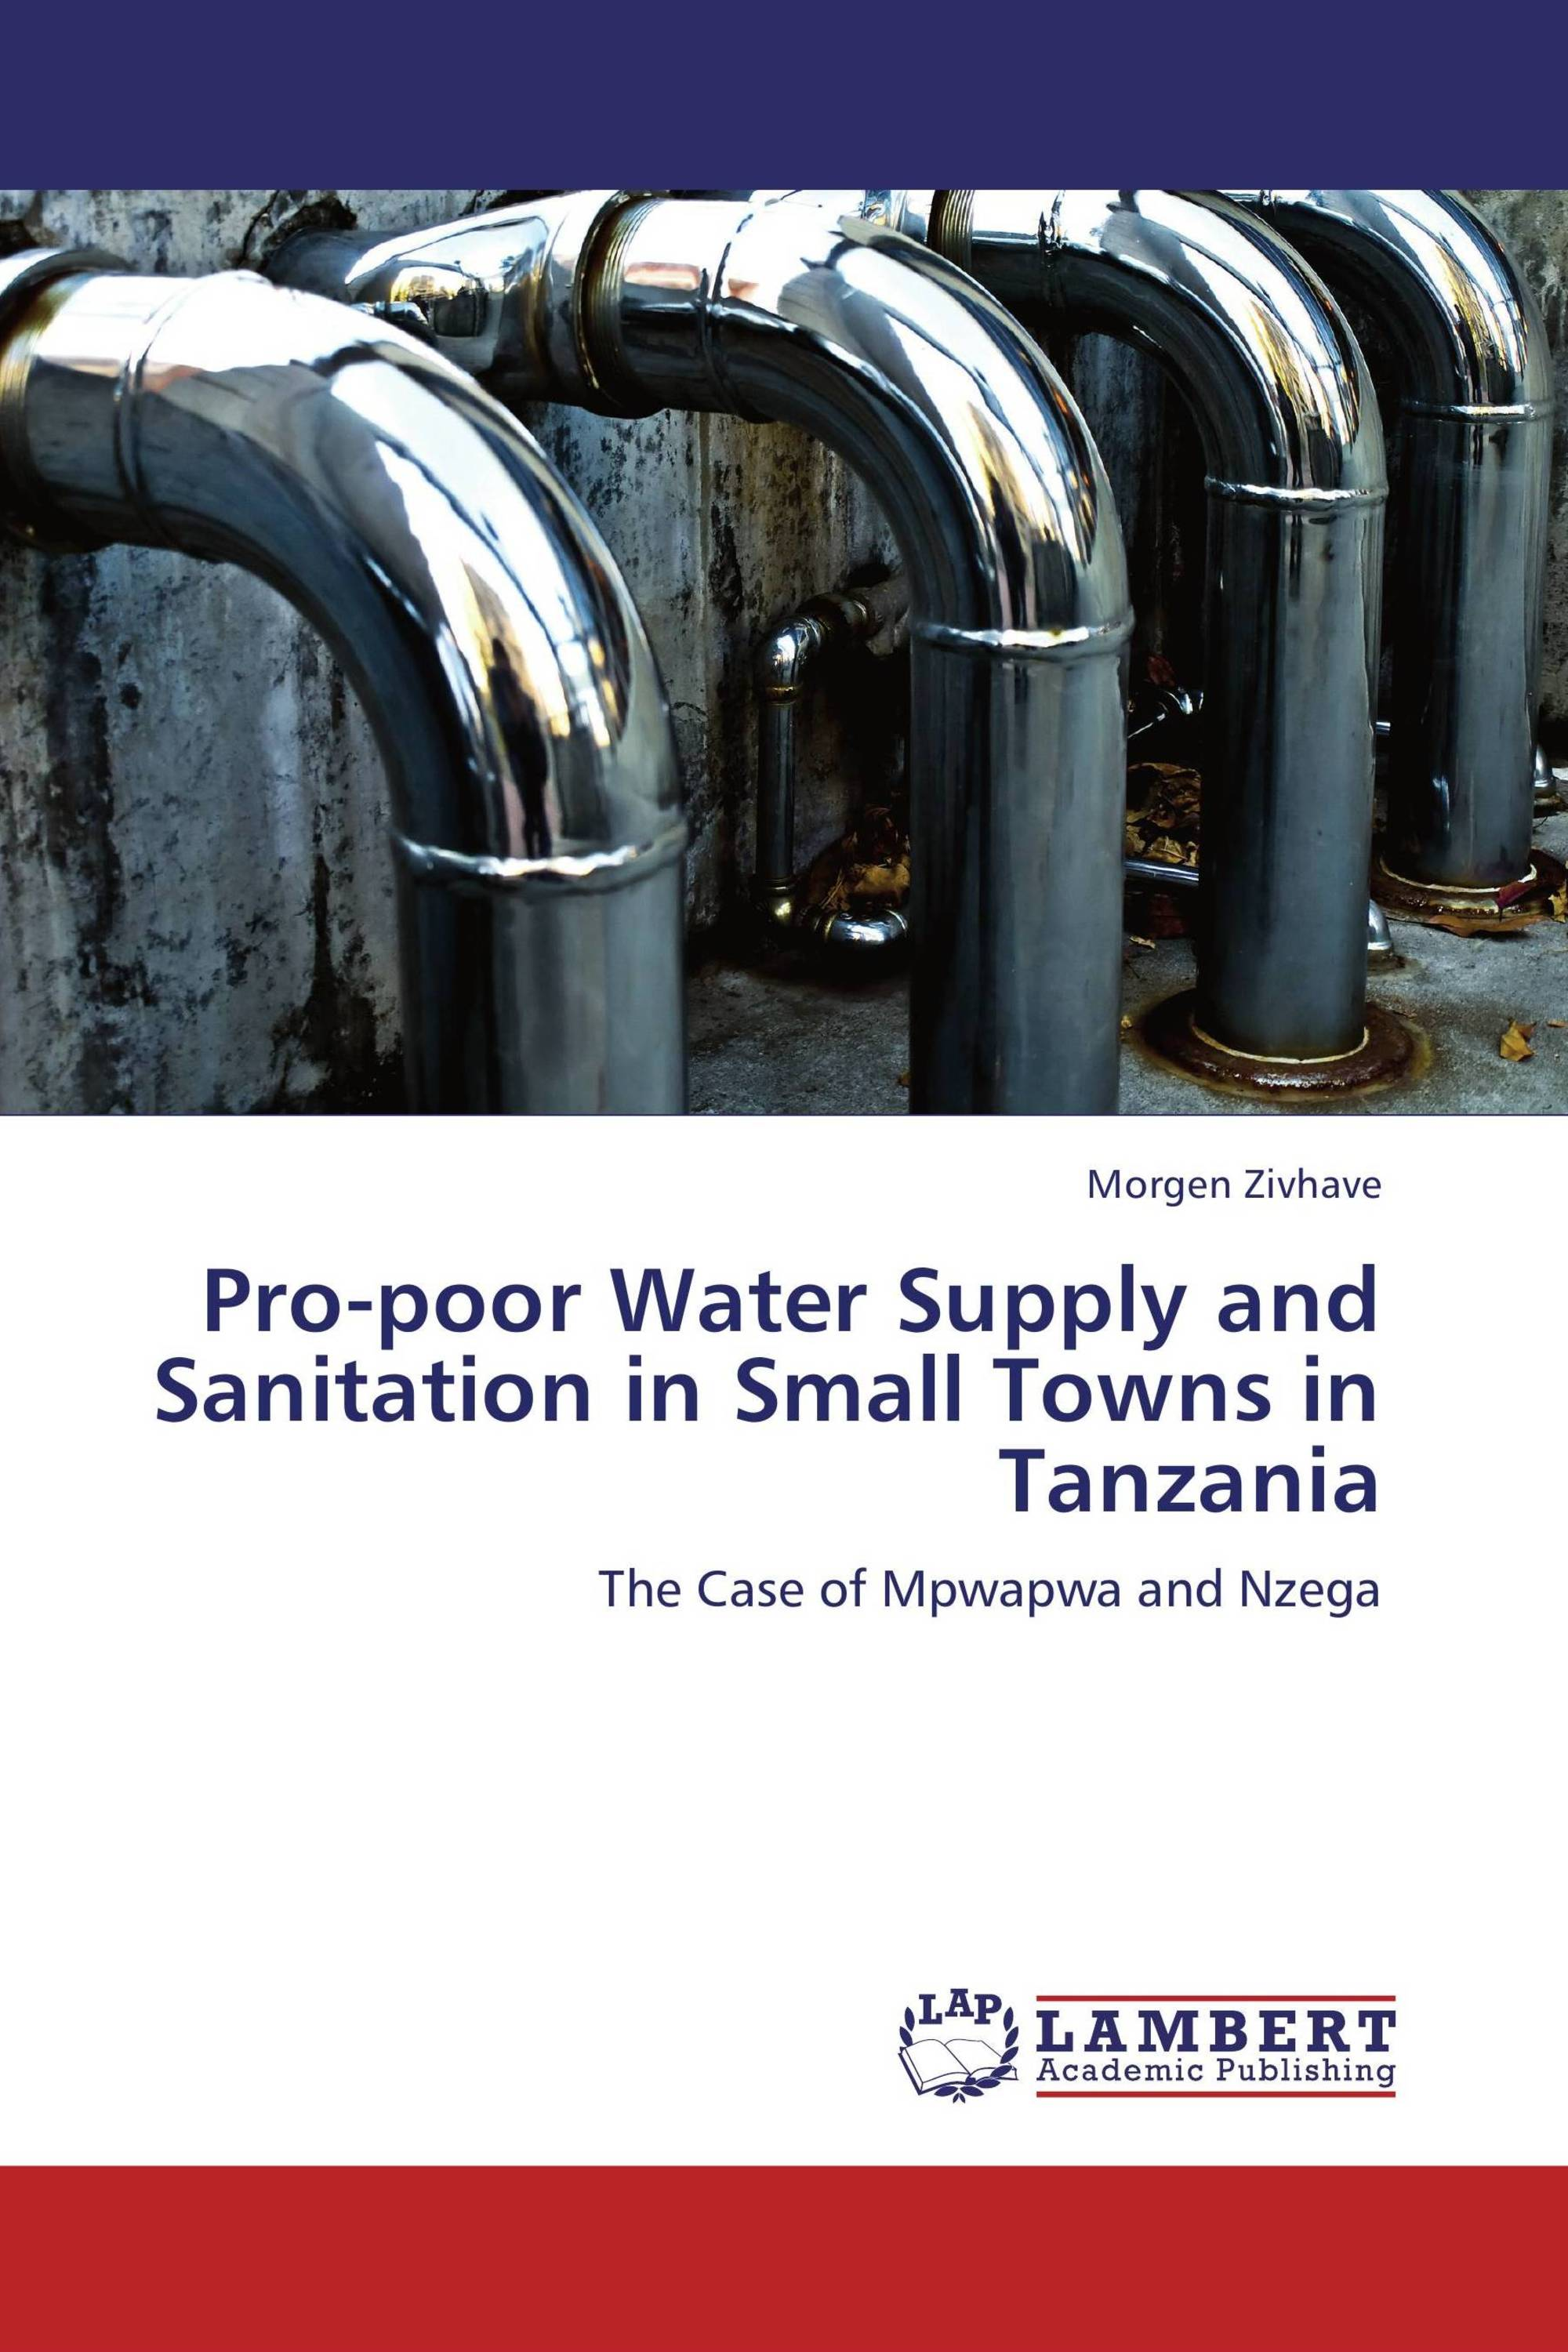 Pro-poor Water Supply and Sanitation in Small Towns in Tanzania